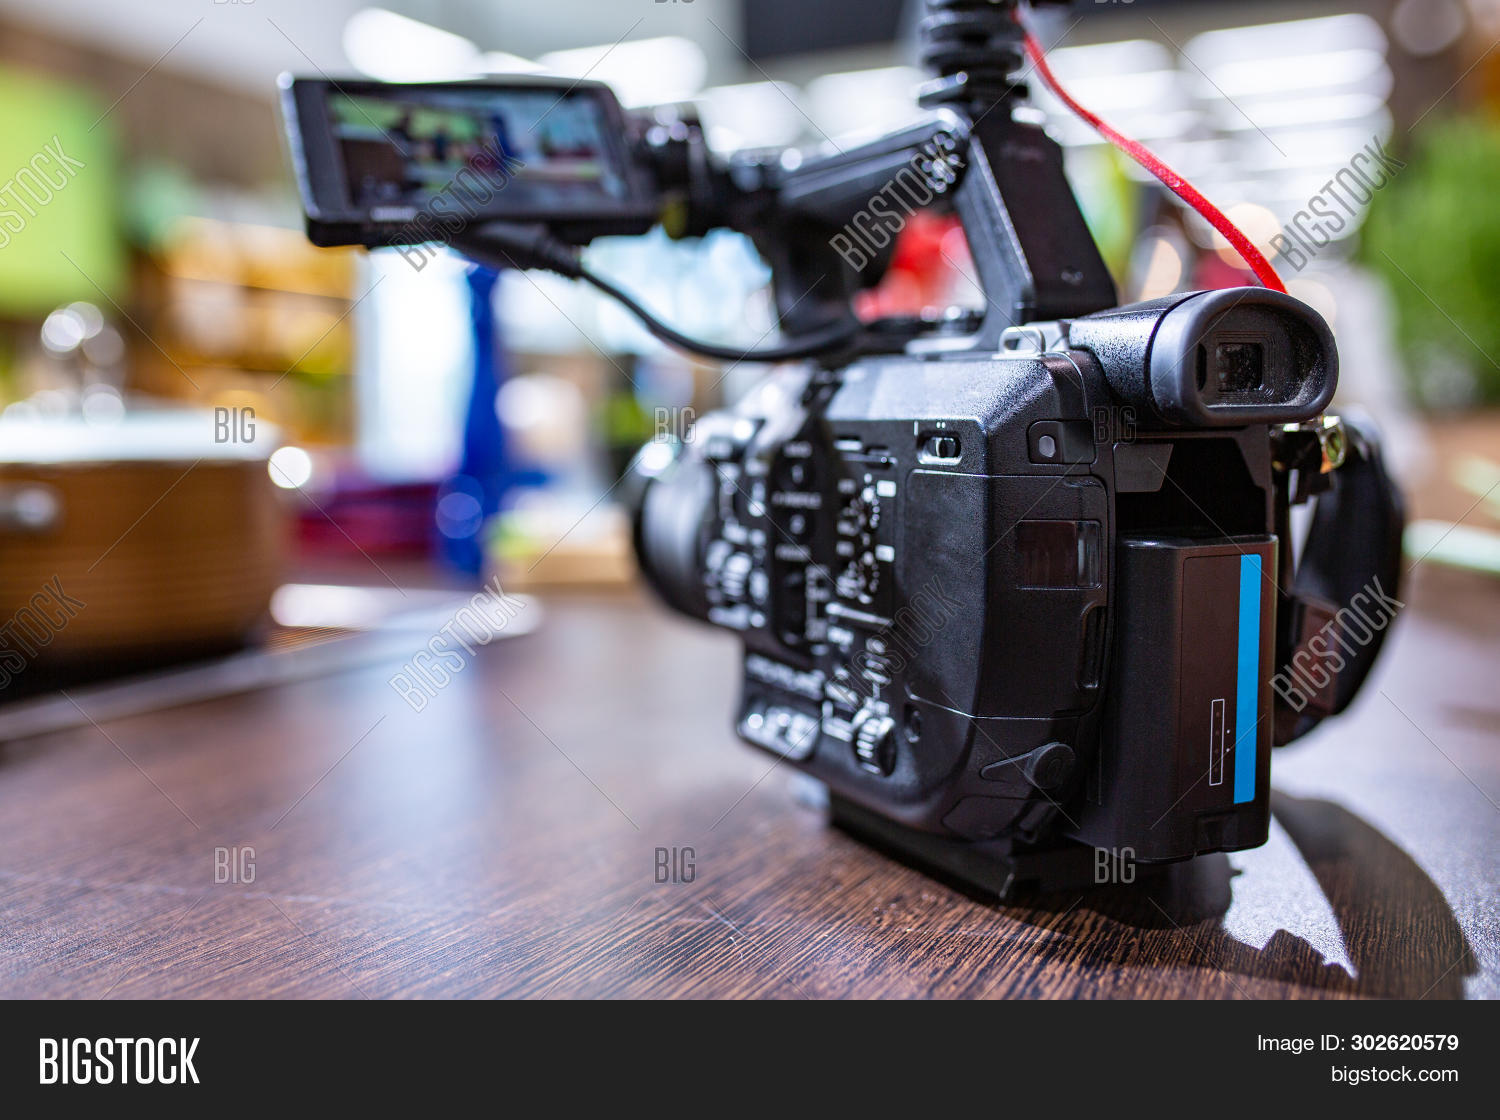 Behind The Scenes Of Video Production Or Video Shooting. The Concept Of Production Of Video Content